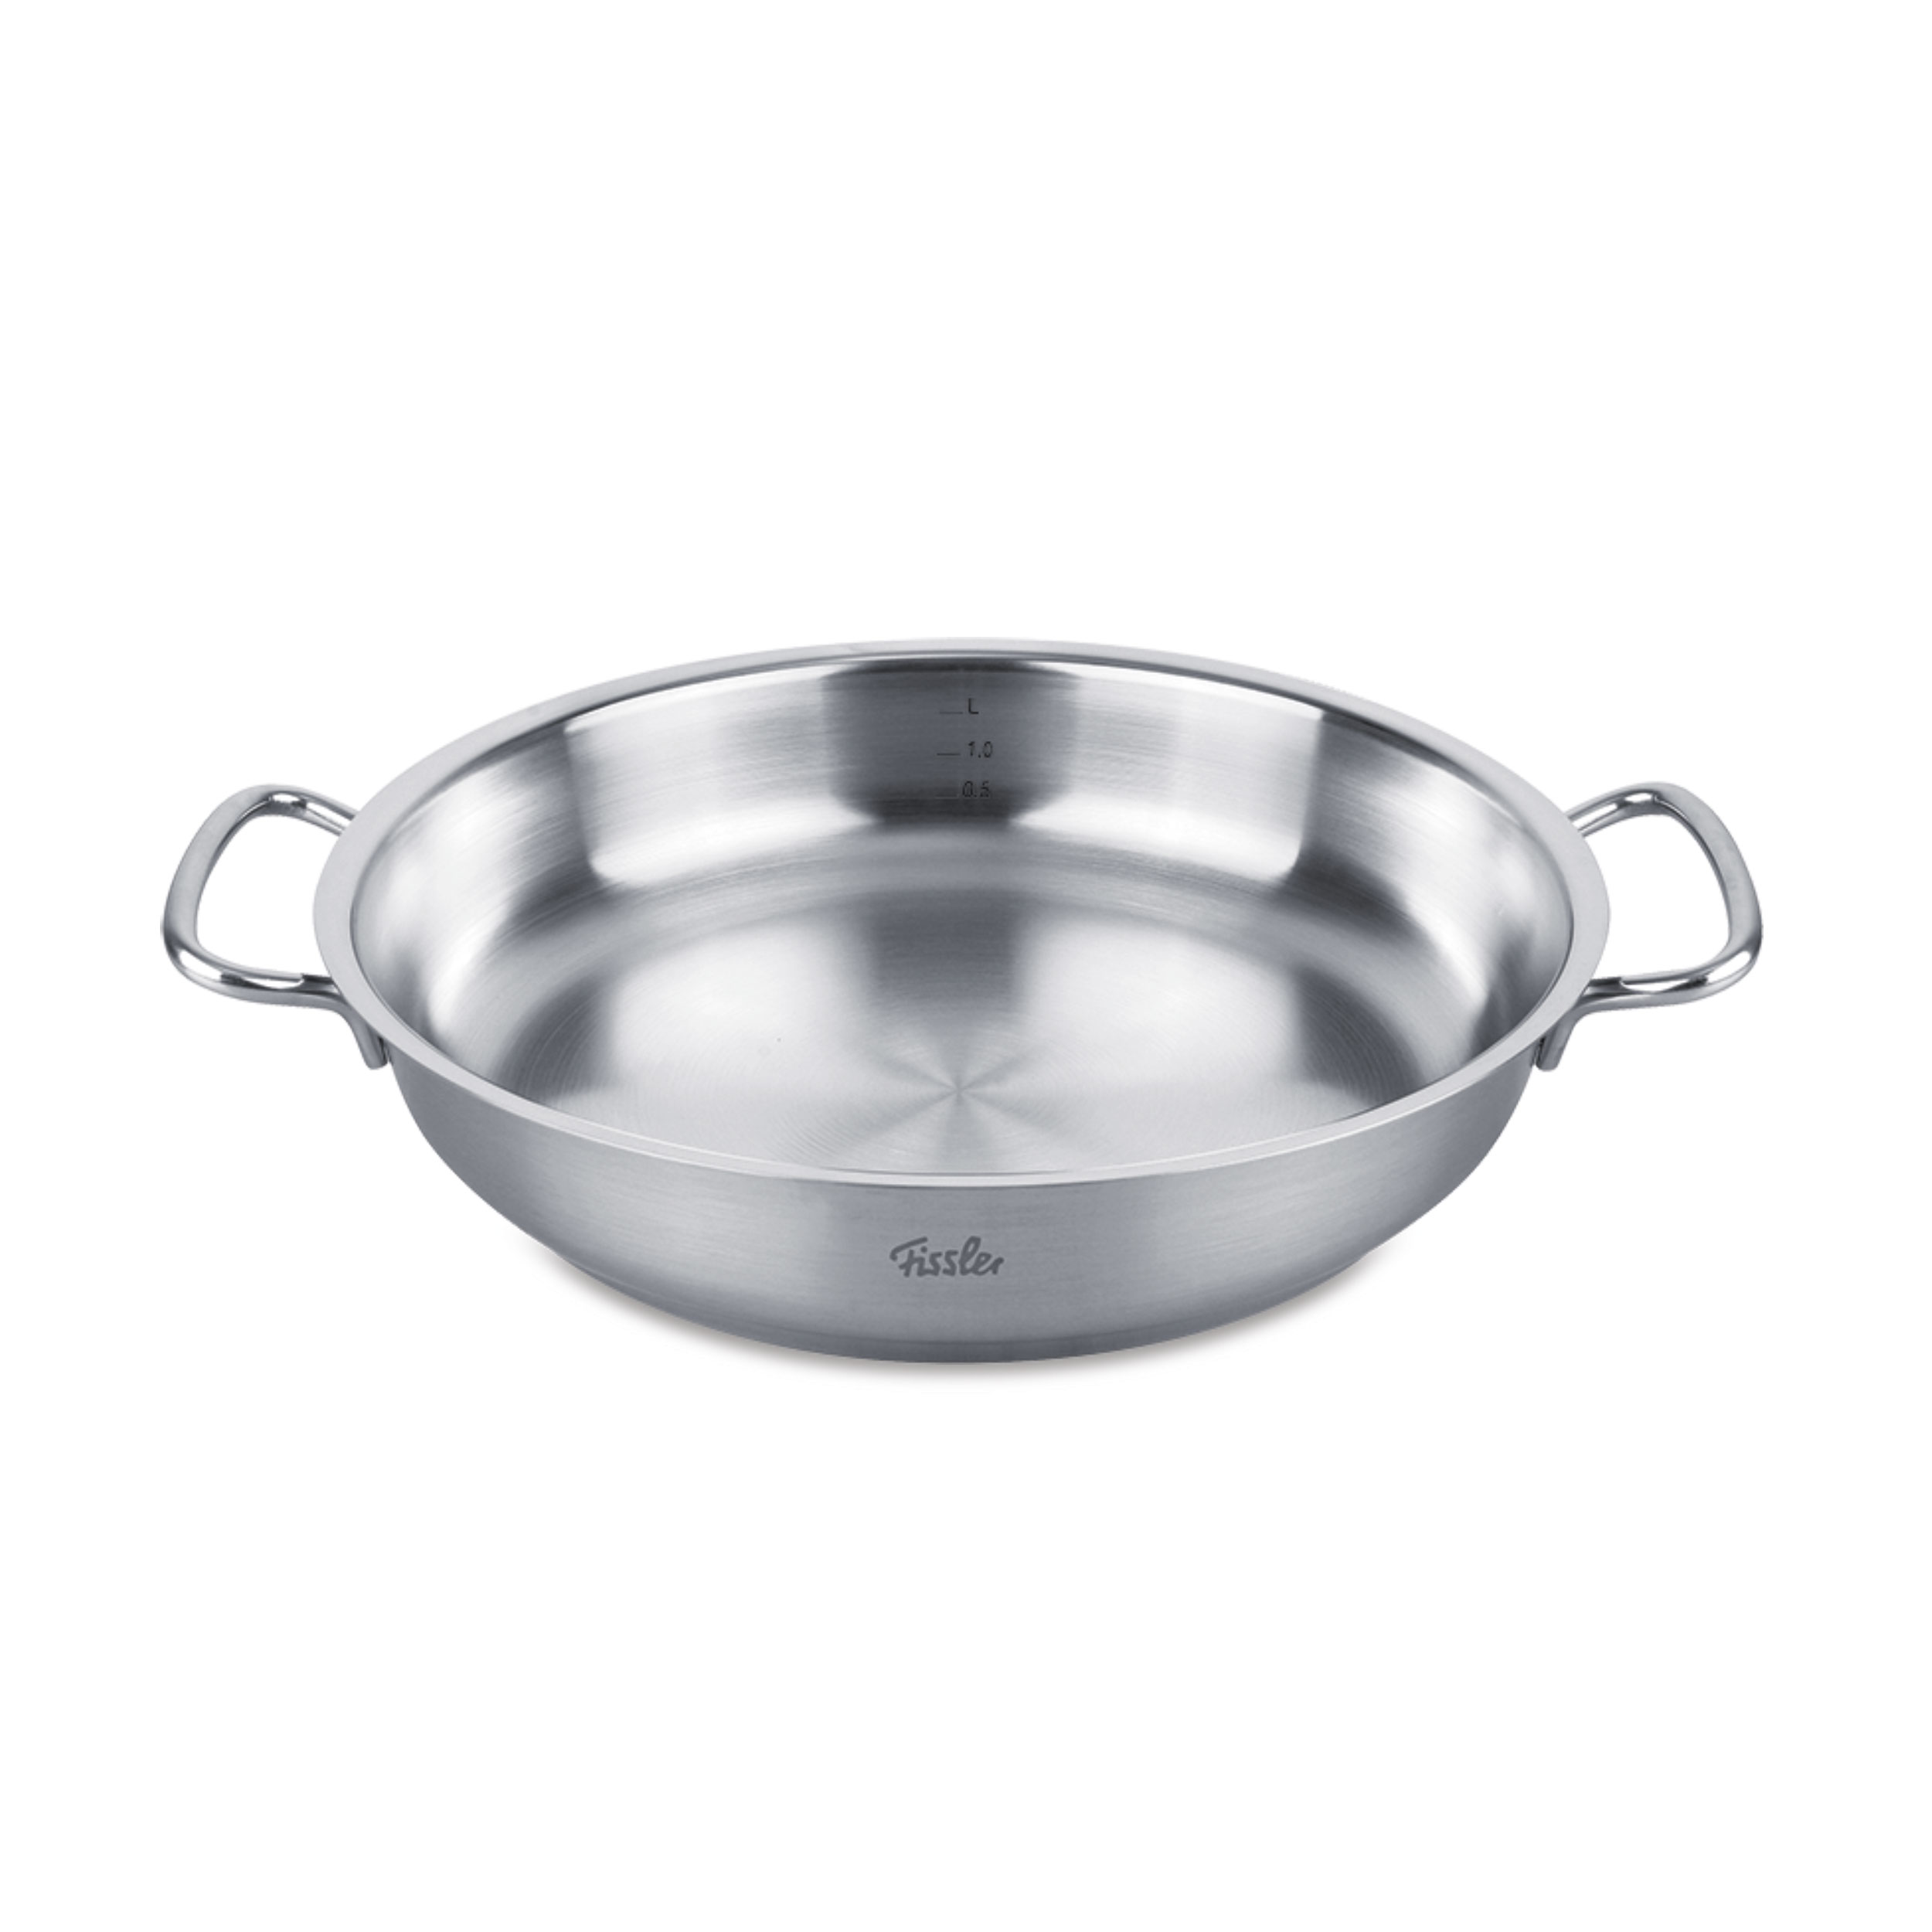 fissler original profi collection stainless steel serving pan induction 28 cm at about tea. Black Bedroom Furniture Sets. Home Design Ideas